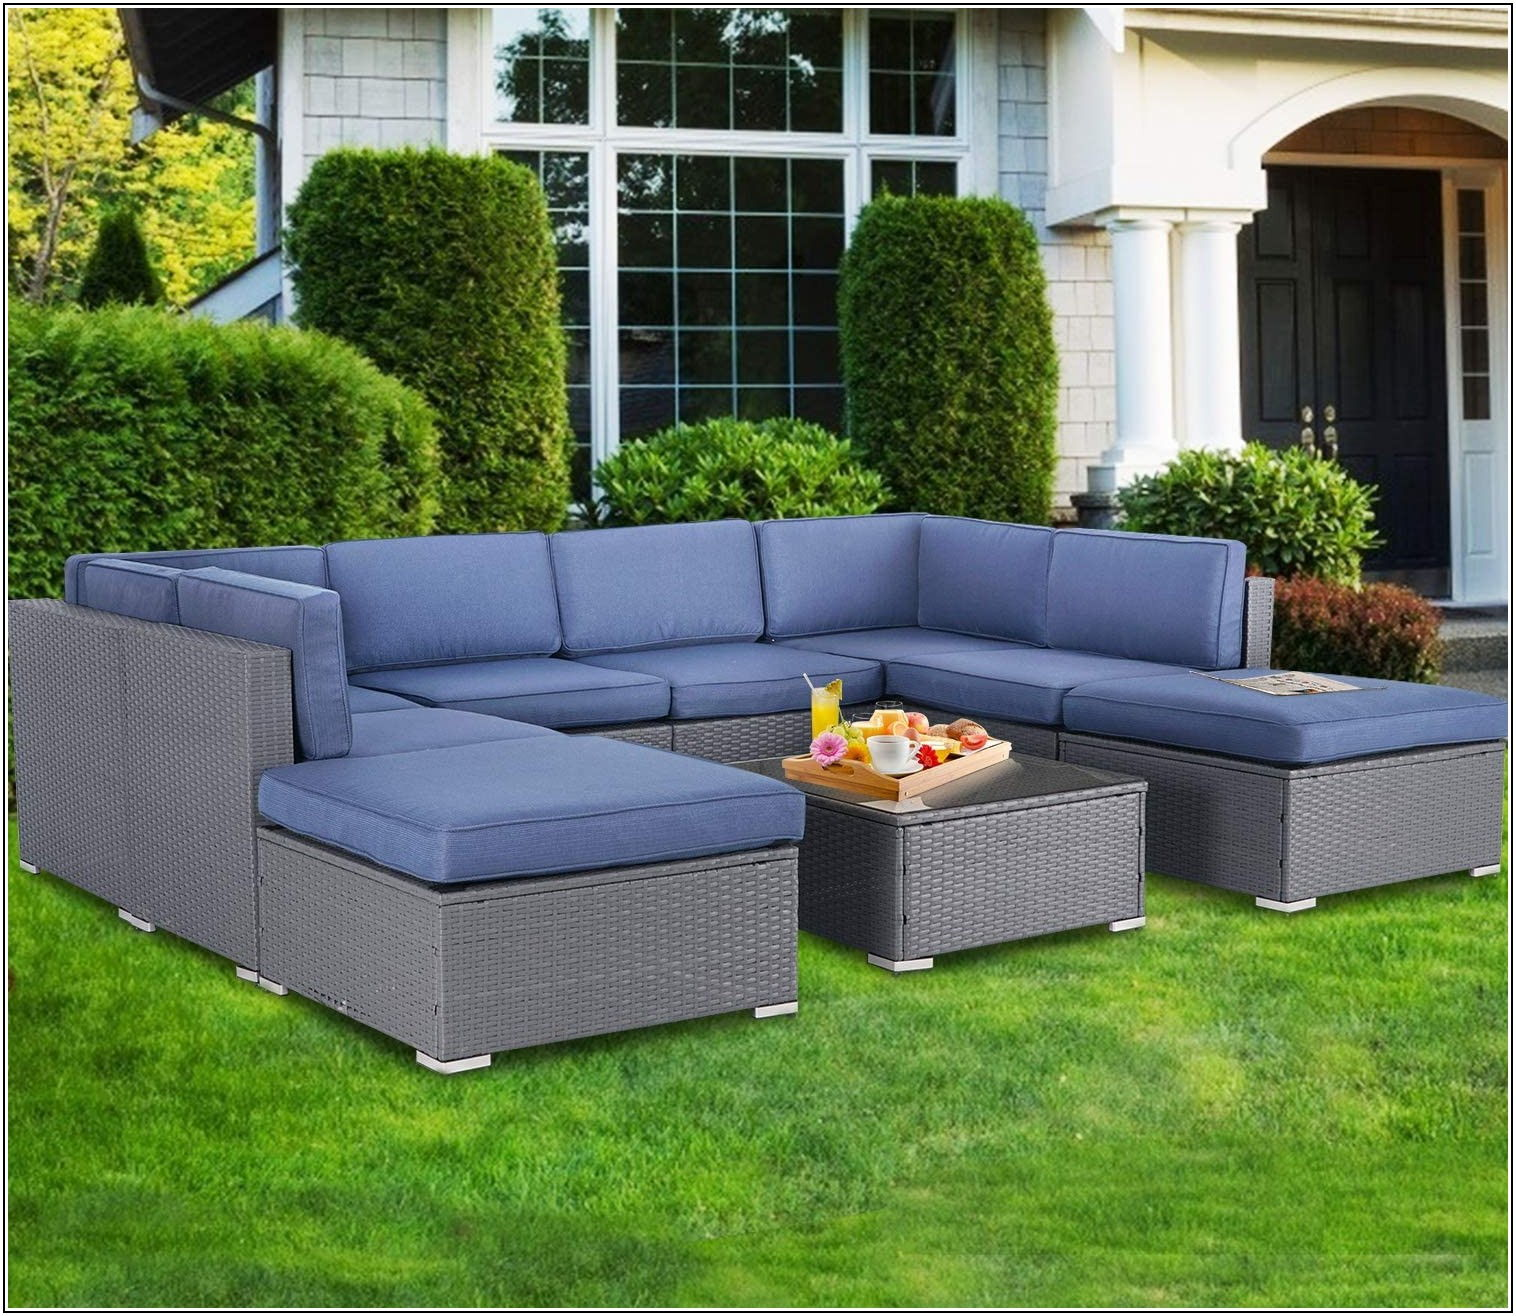 20 Piece Patio Furniture Sets